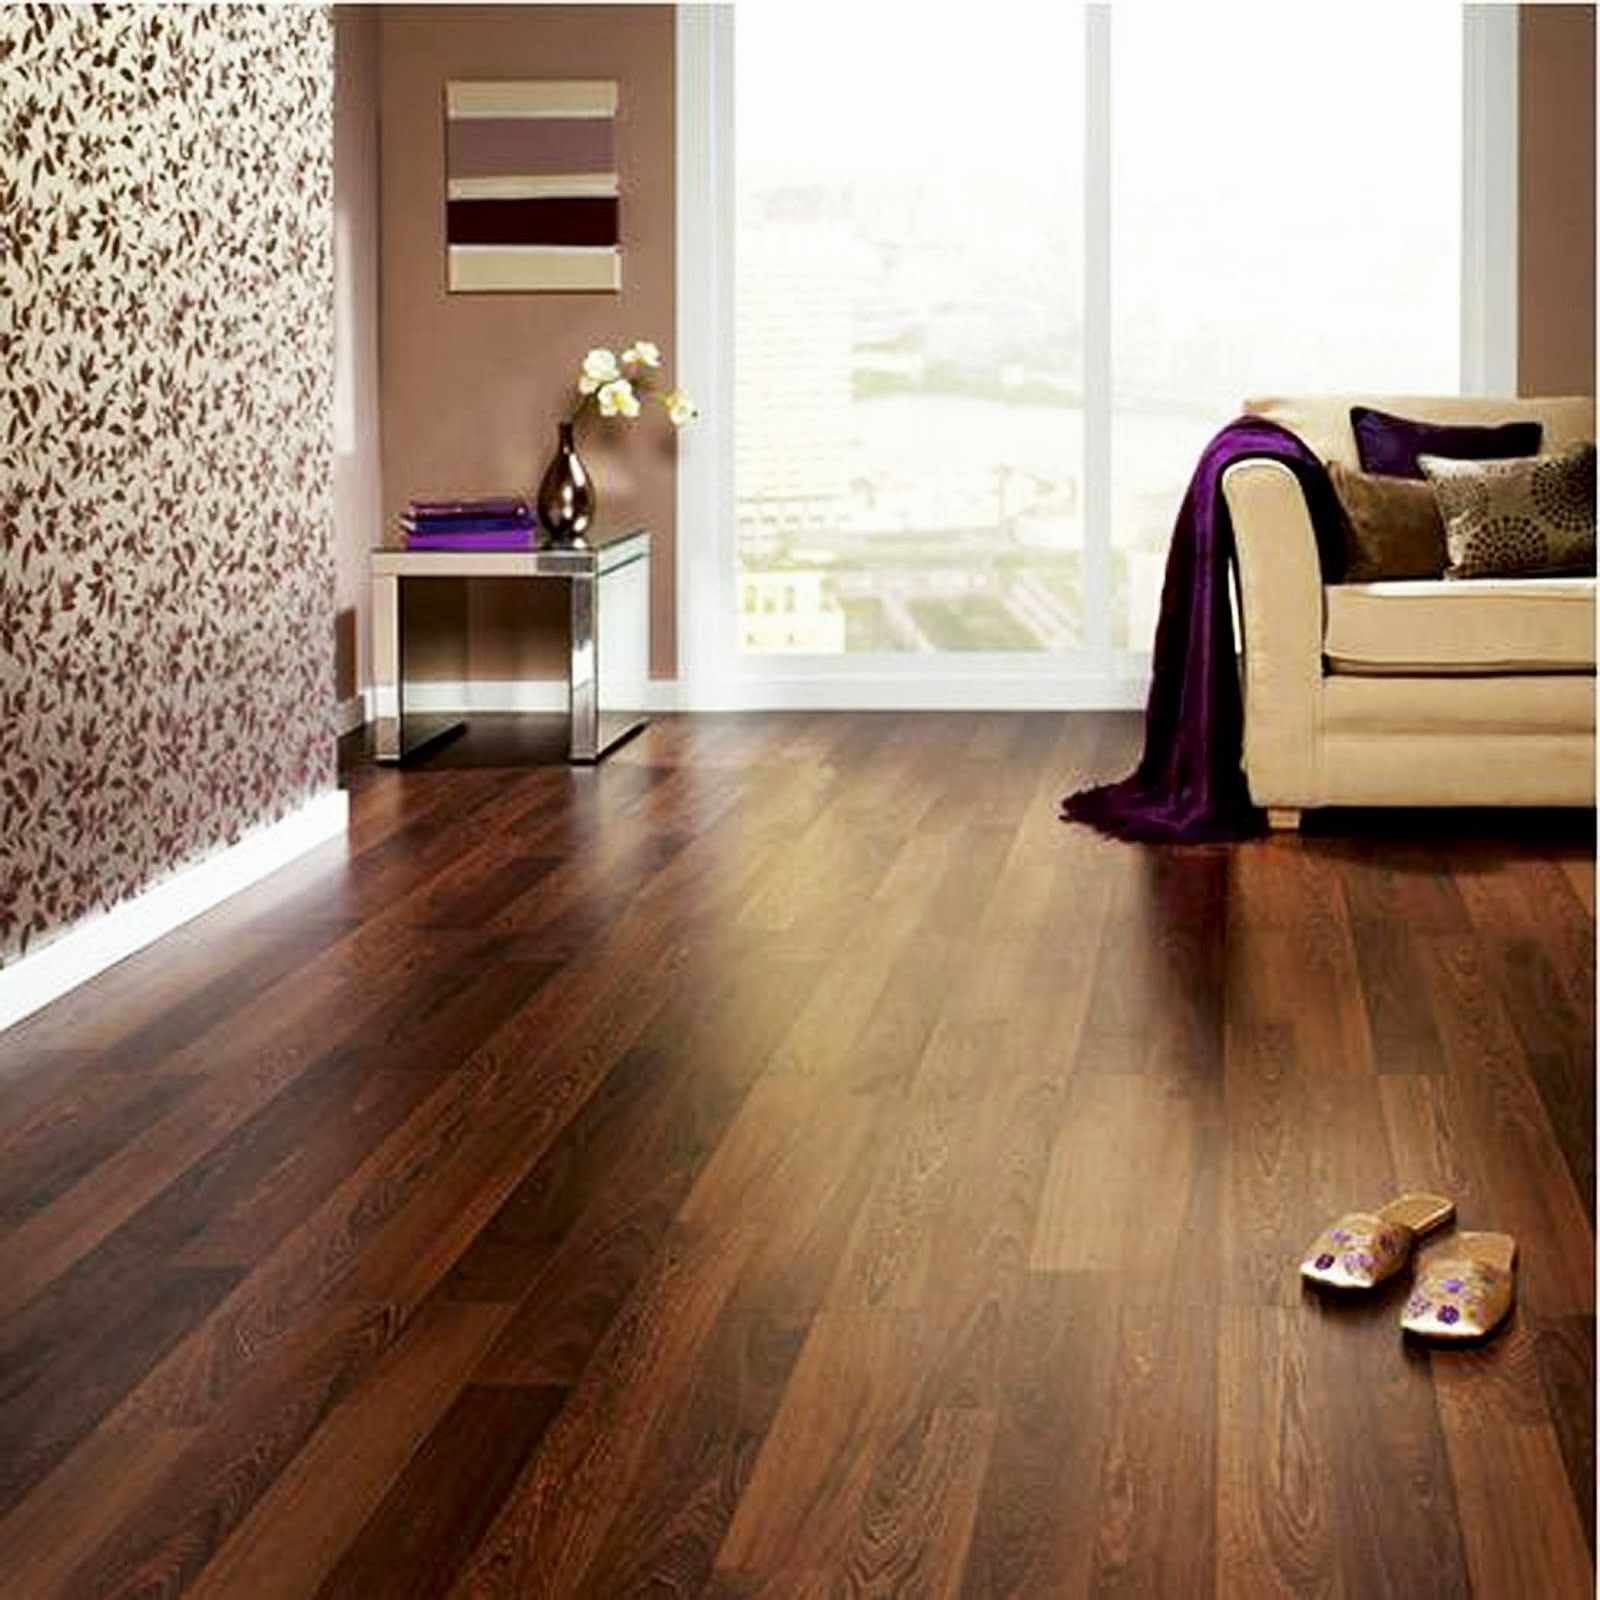 Laminate Flooring Is One Of The Most Popular And Cost Effective Architectural Styles Available For Home Building Or Renovating